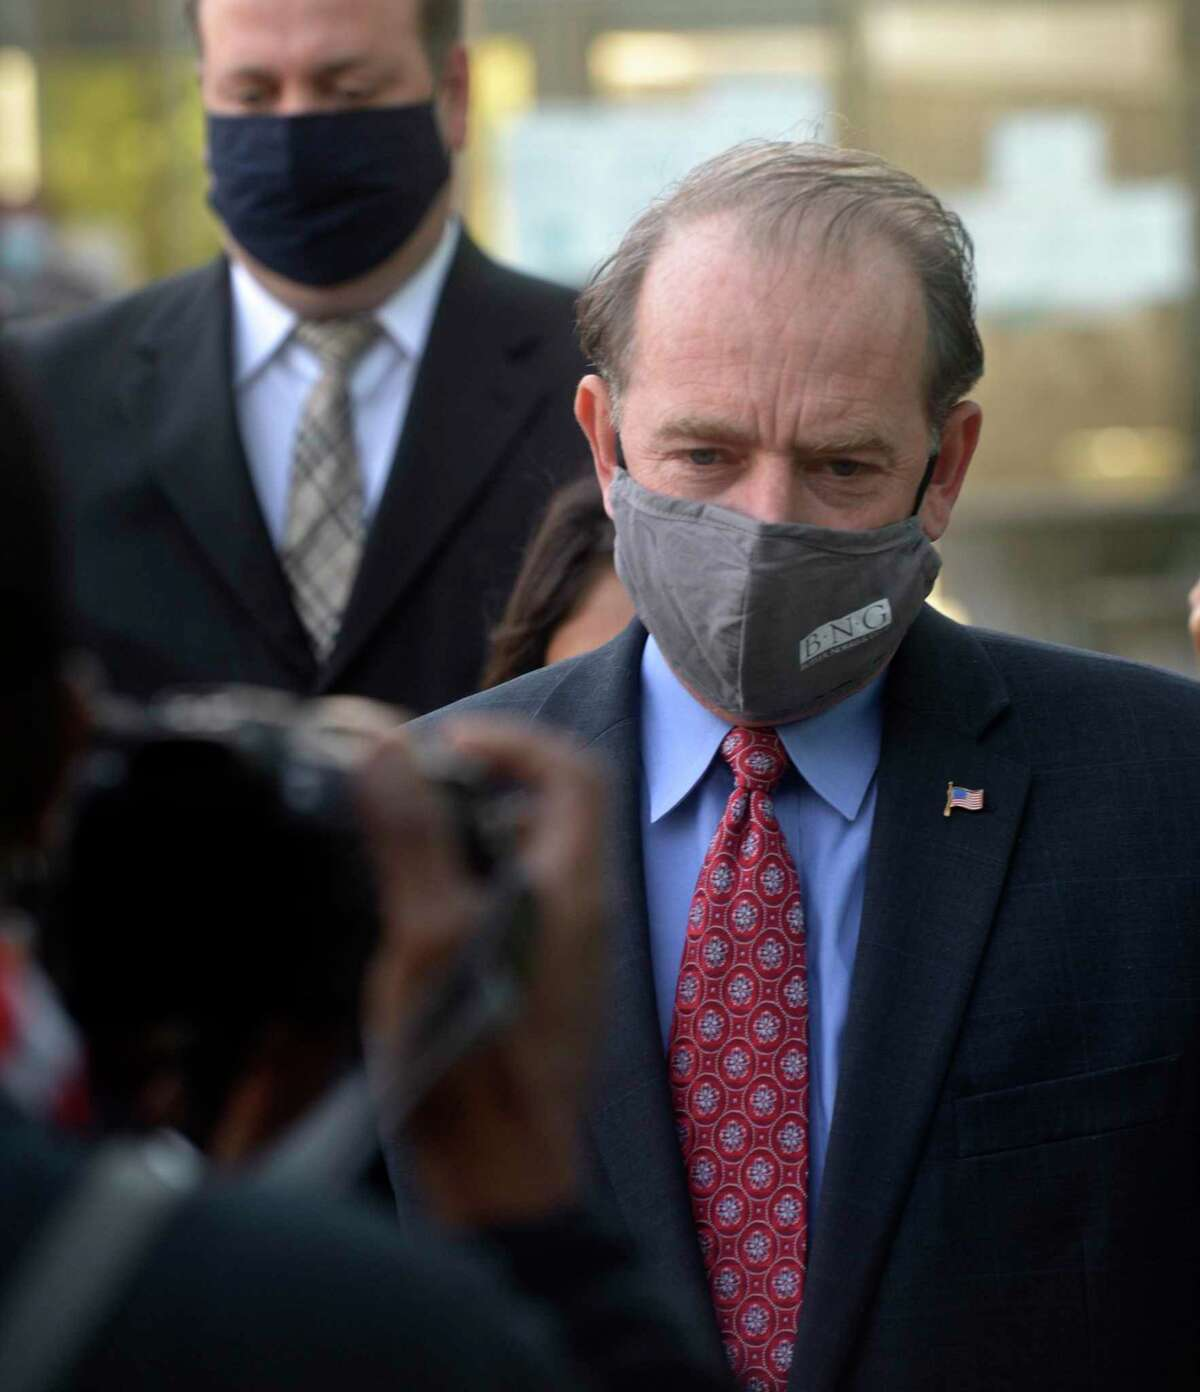 Kent Mawhinney, the attorney charged in the Jennifer Dulos case, was released on bond Monday. He was brought to the Superior Court, in Stamford, Conn, where he posted bond and was fitted with a GPS monitor. Monday, October 19, 2020.